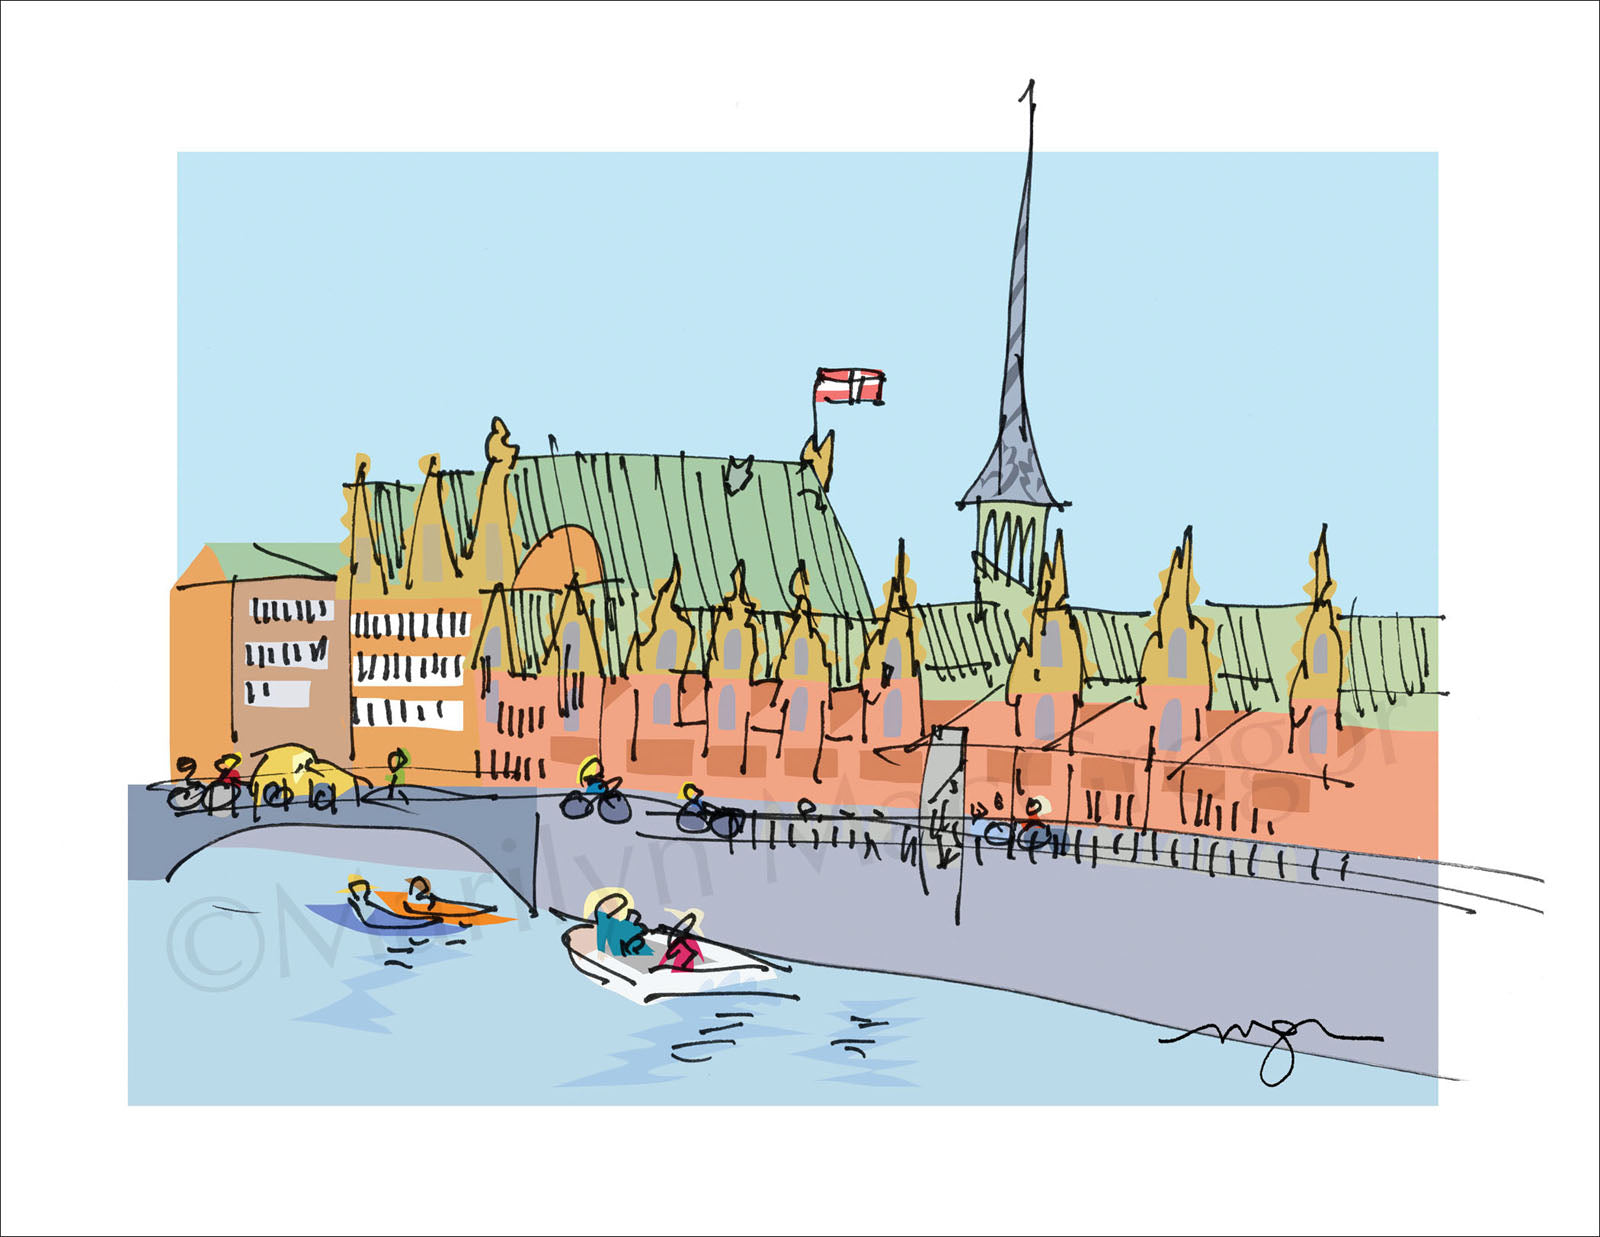 Copenhagen, Denmark: Canal Cruise Art Print in 3 sizes